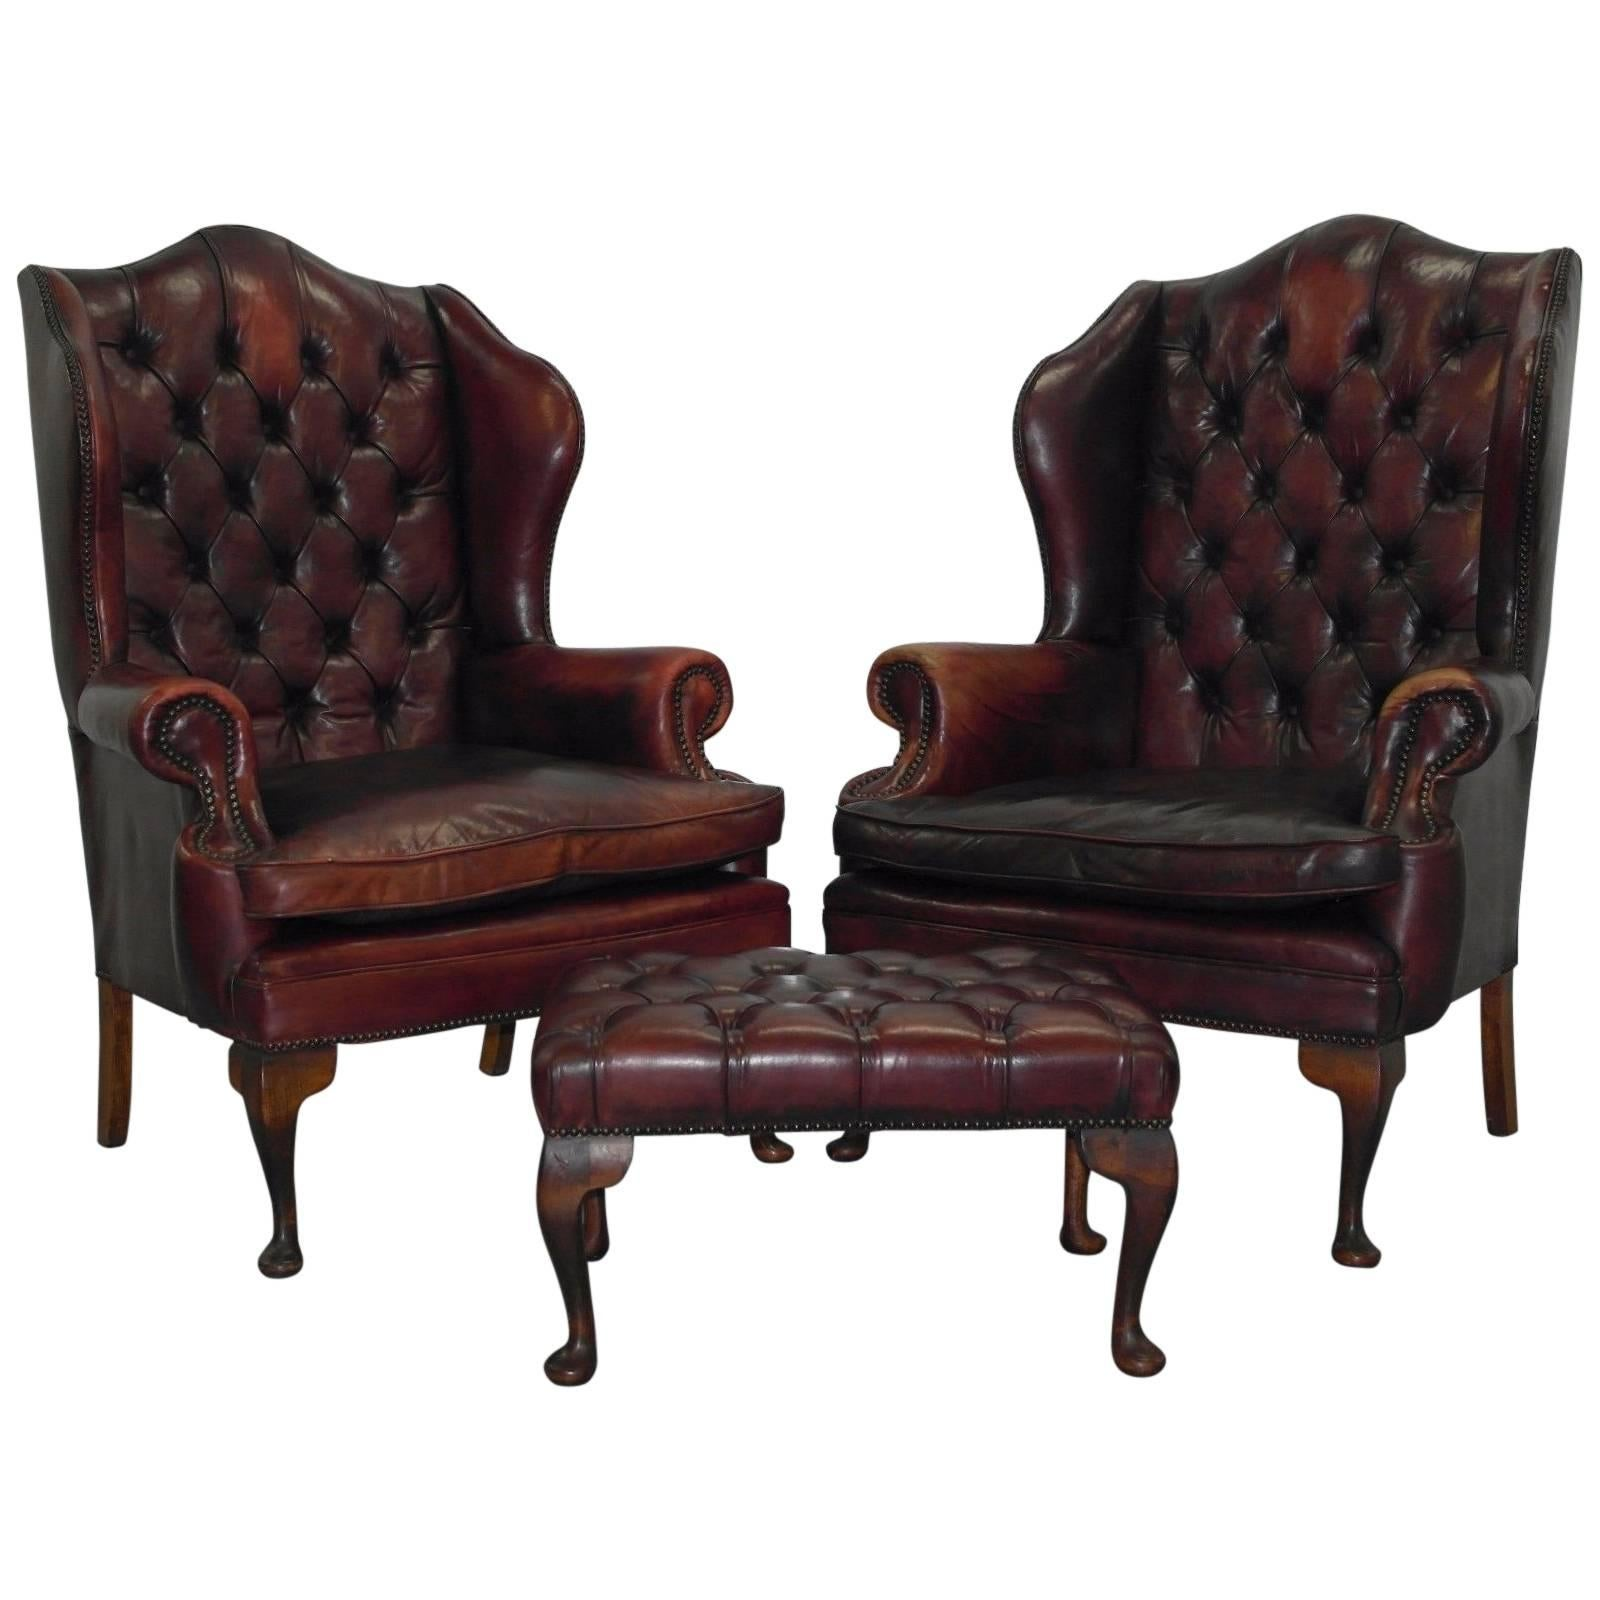 oxblood leather wing chair safavieh dining chairs target pair of chesterfield william morris armchairs with footstool at 1stdibs